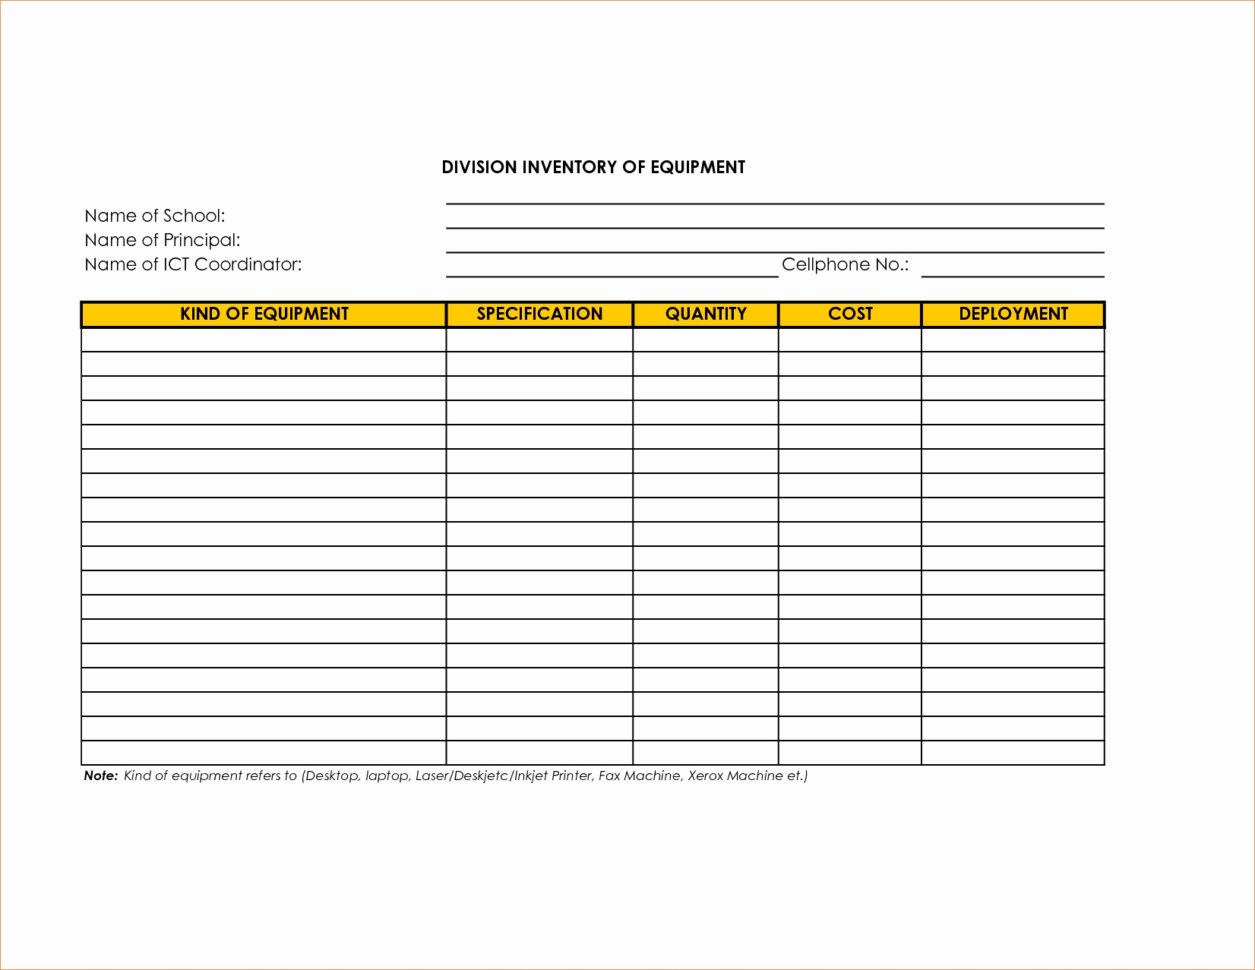 Liquor Cost Spreadsheet Excel Unique Medical Supply Inventory With Supply Inventory Spreadsheet